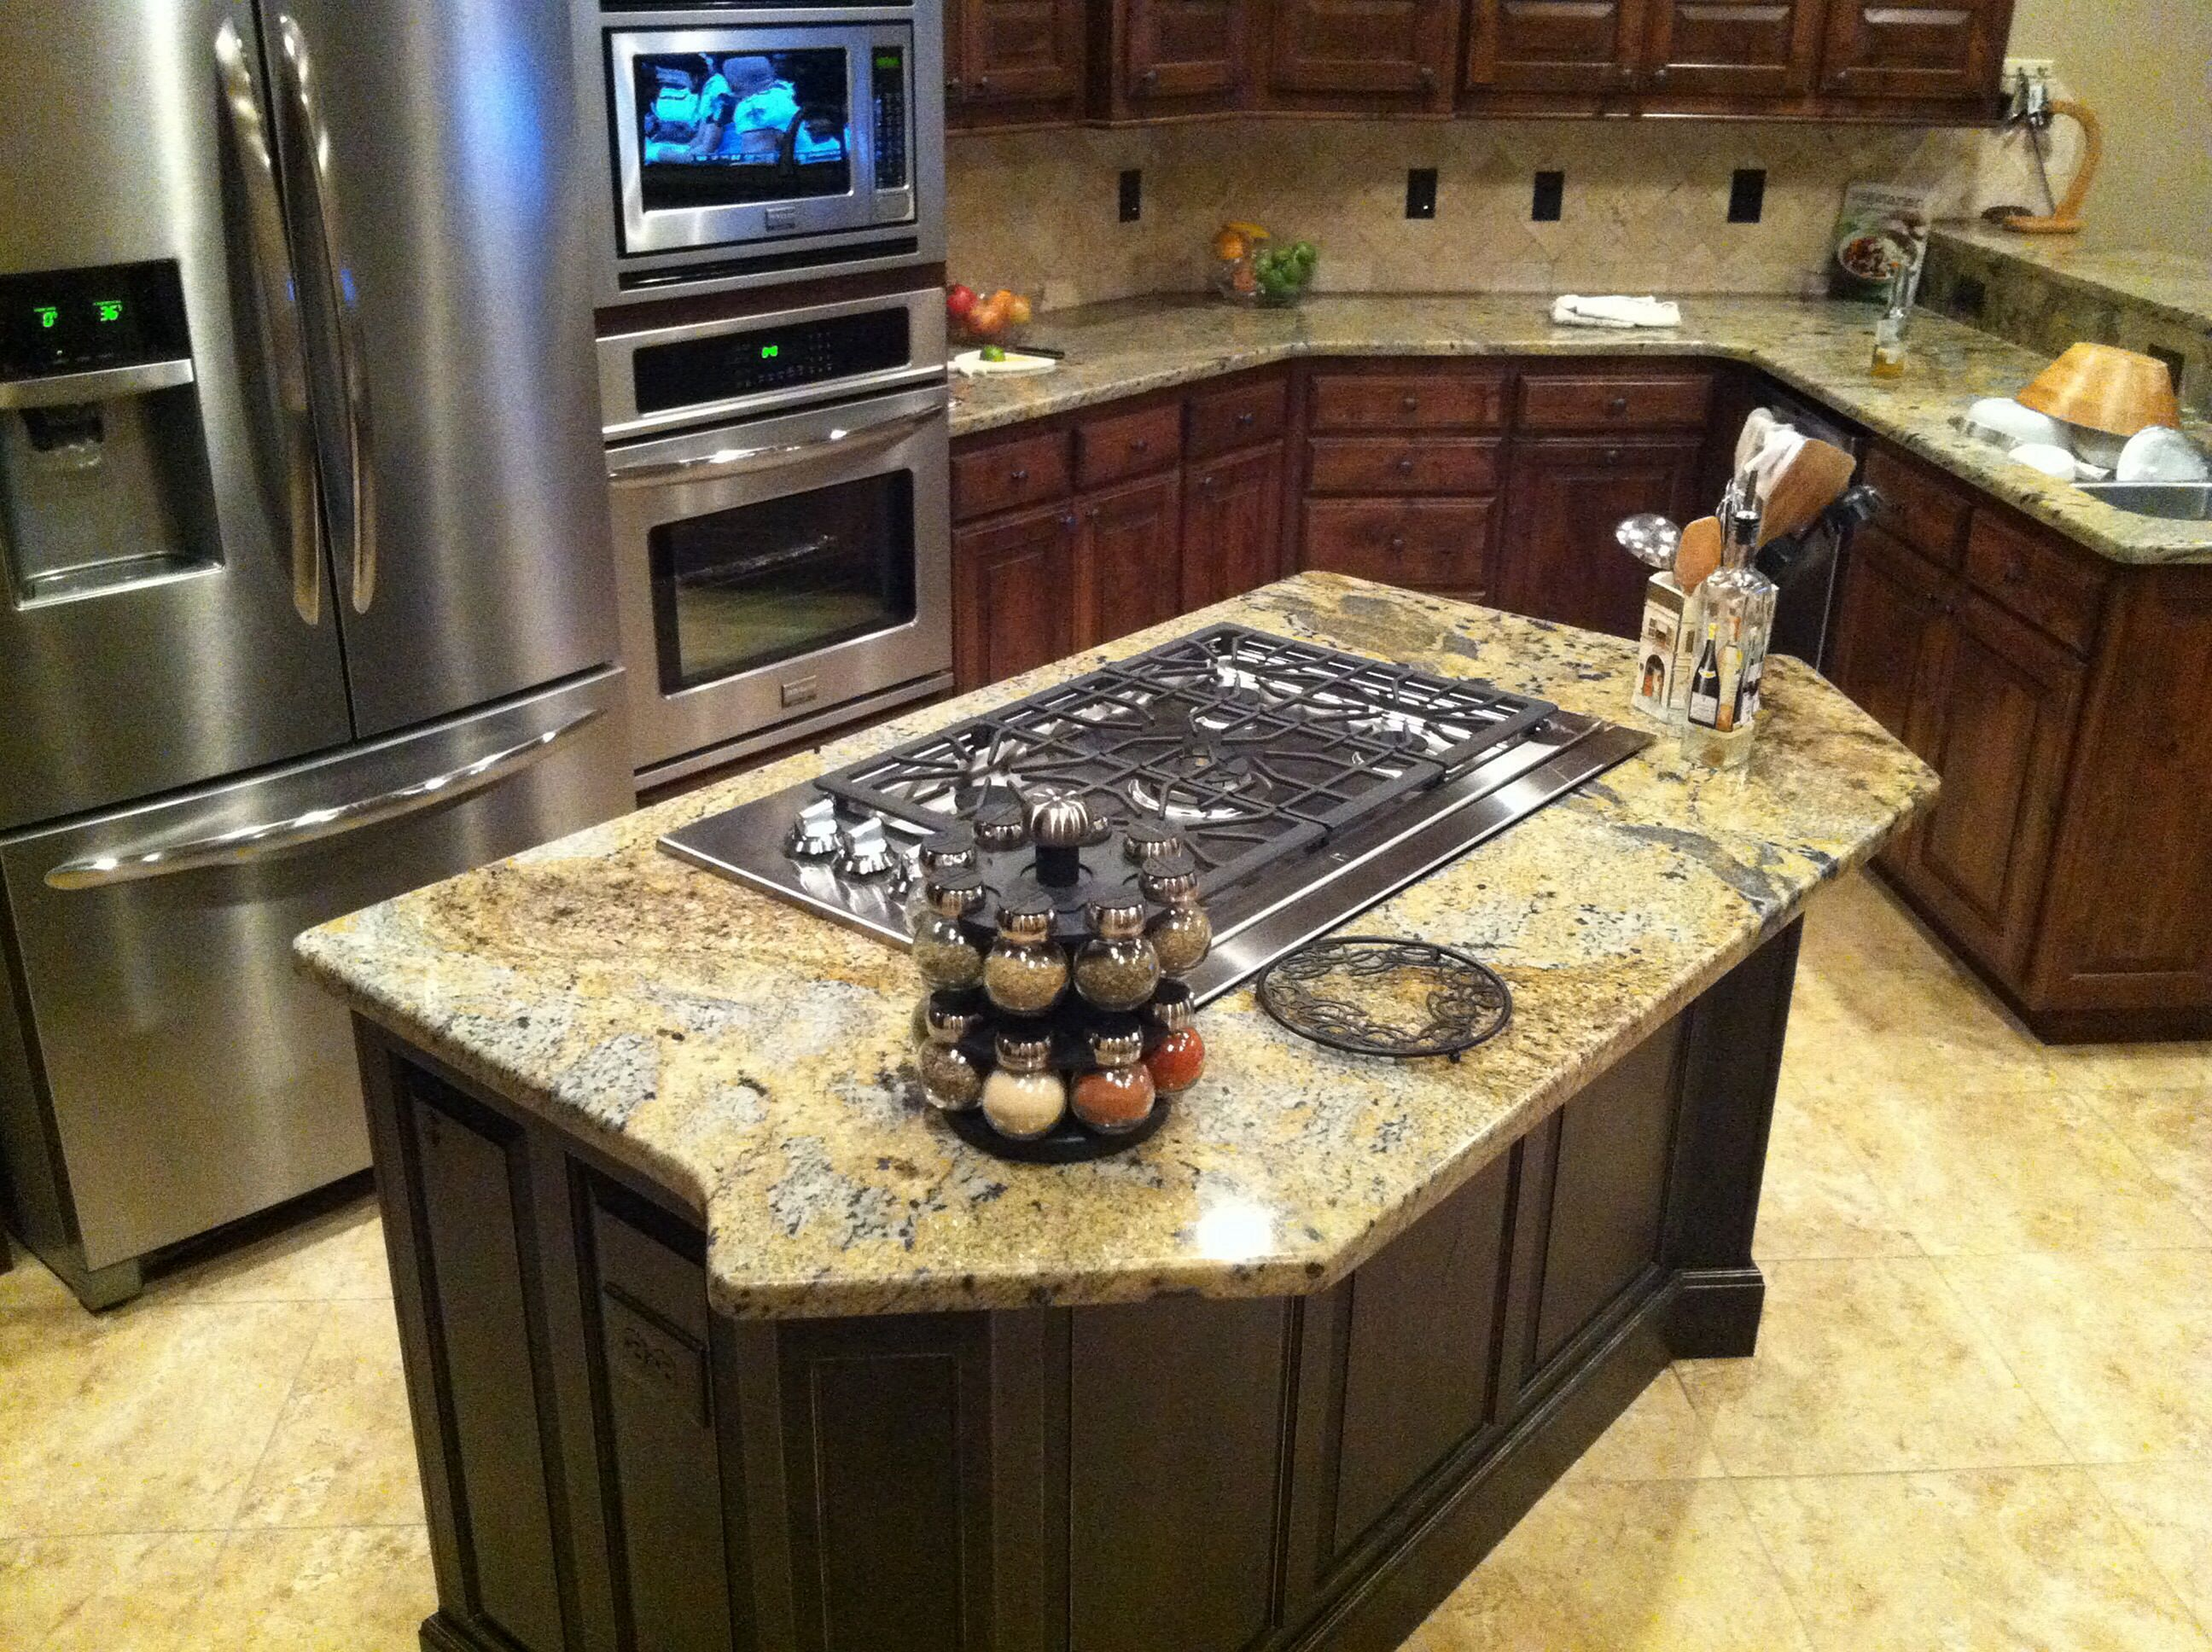 Top 15 Kitchen Island With Stove For Home Look More Beautiful Https Decorathin Kitchen Island With Stove Kitchen Island With Cooktop Modern Kitchen Furniture